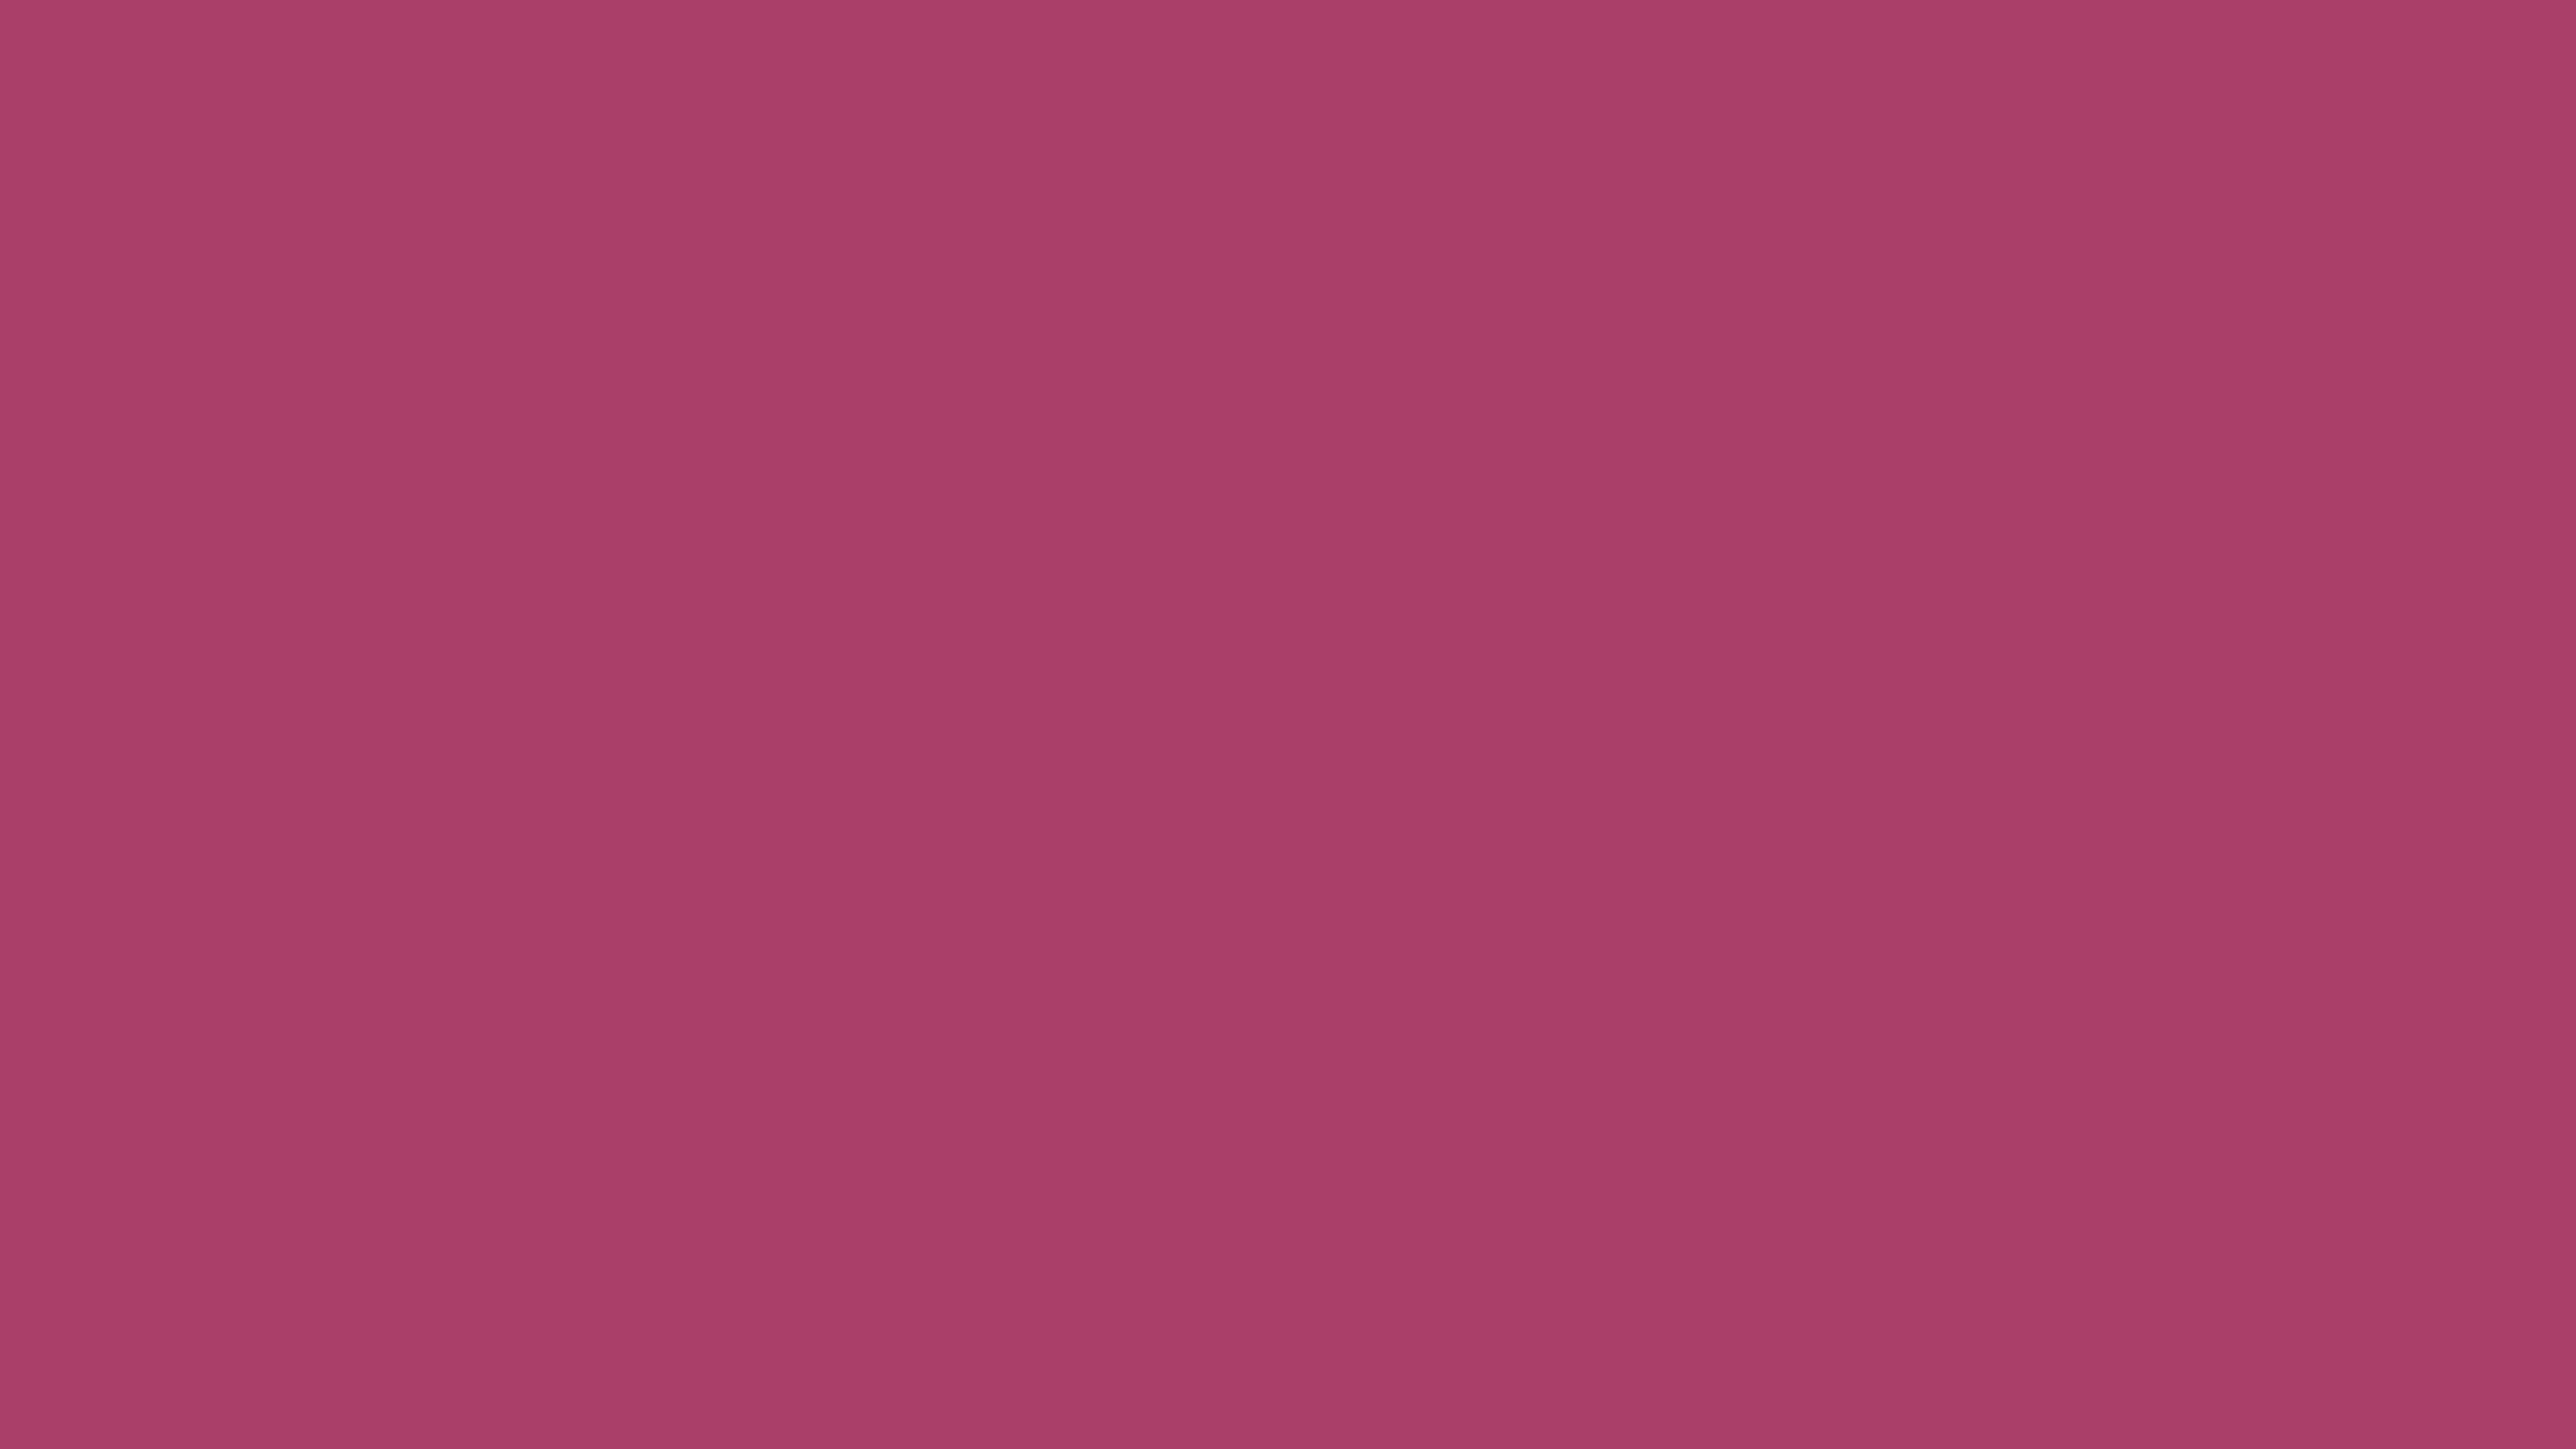 4096x2304 Medium Ruby Solid Color Background